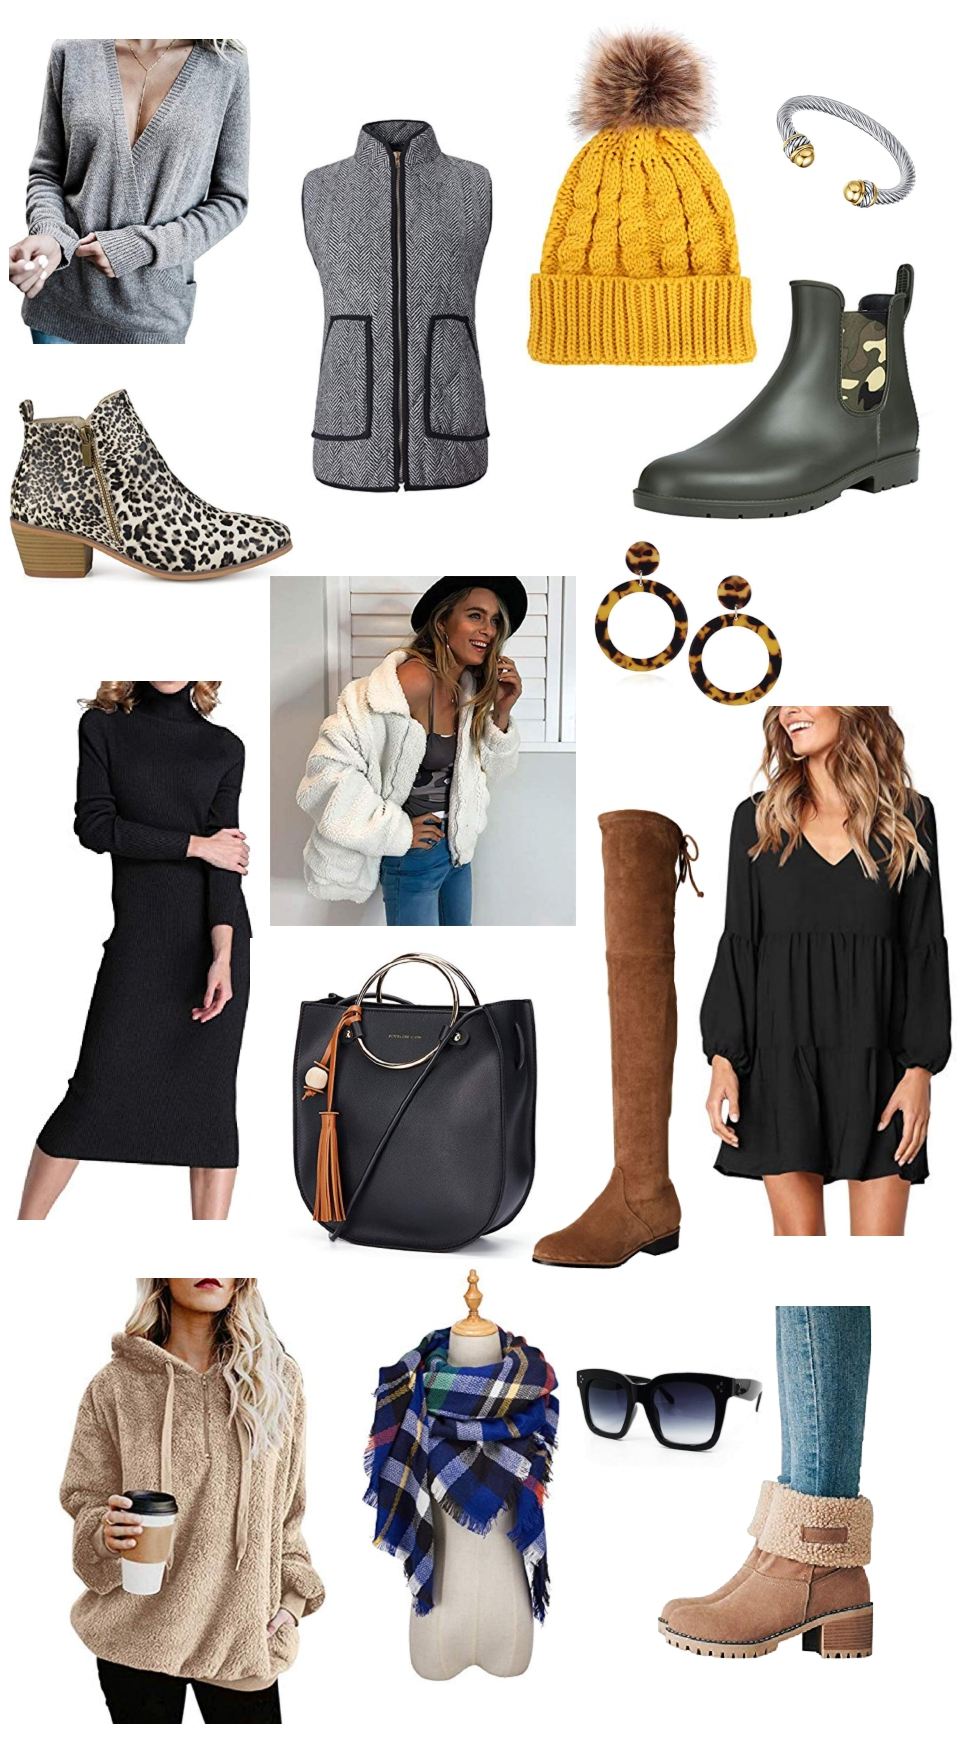 Affordable Fashion and Beauty, Designer Dupes, Affordable Fall and Winter Amazon Fashion Finds